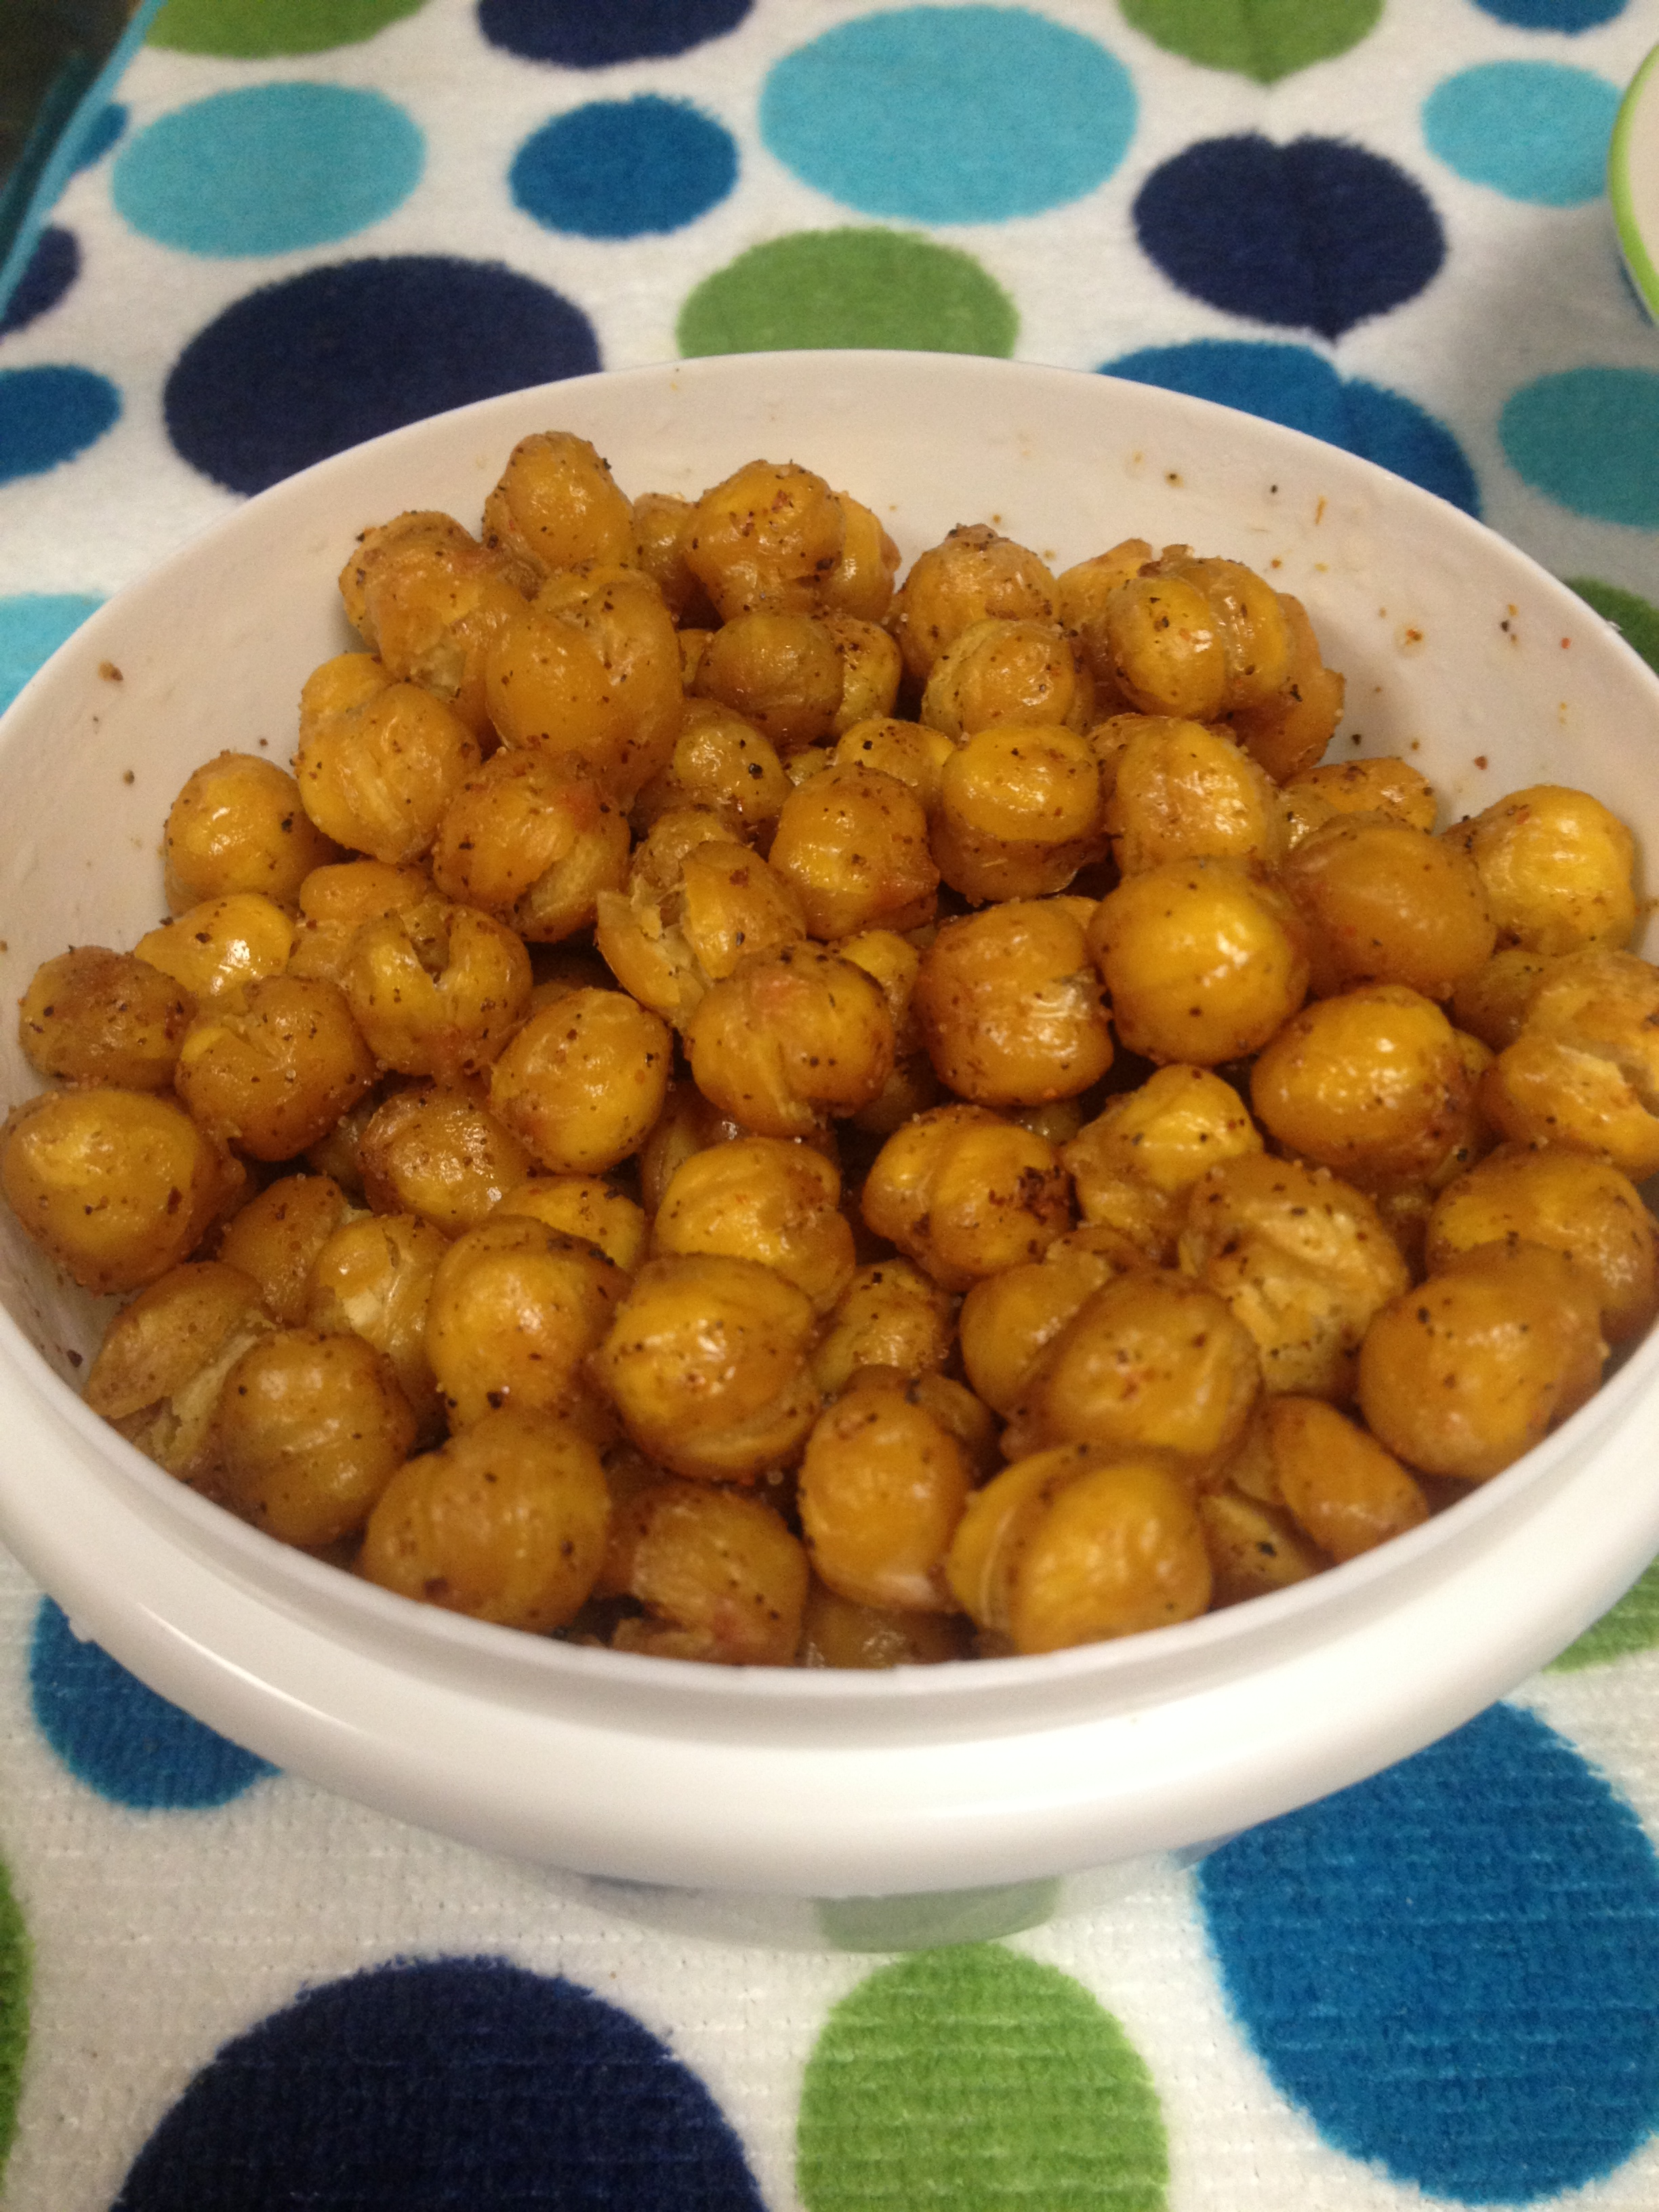 Roasted Chickpeas (Garbanzo beans) | Life with the Rigneys